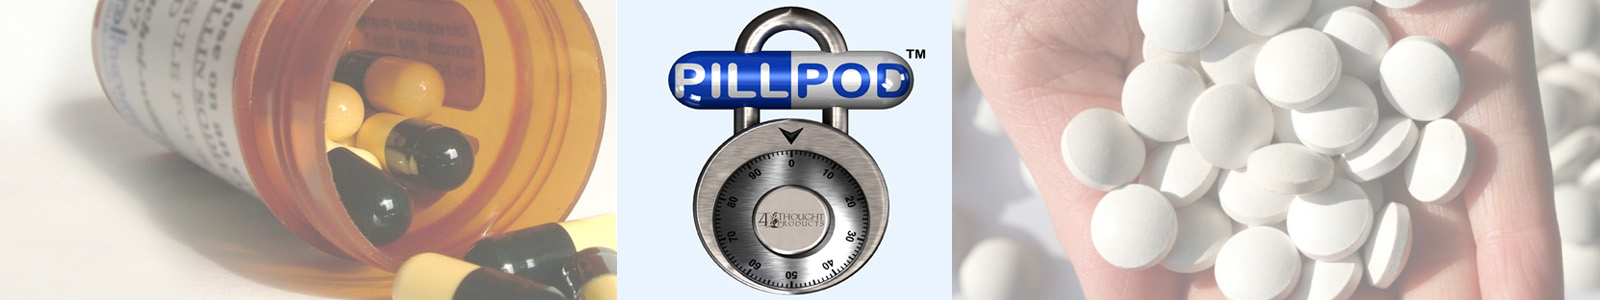 Pill Pod Drug Lock Box